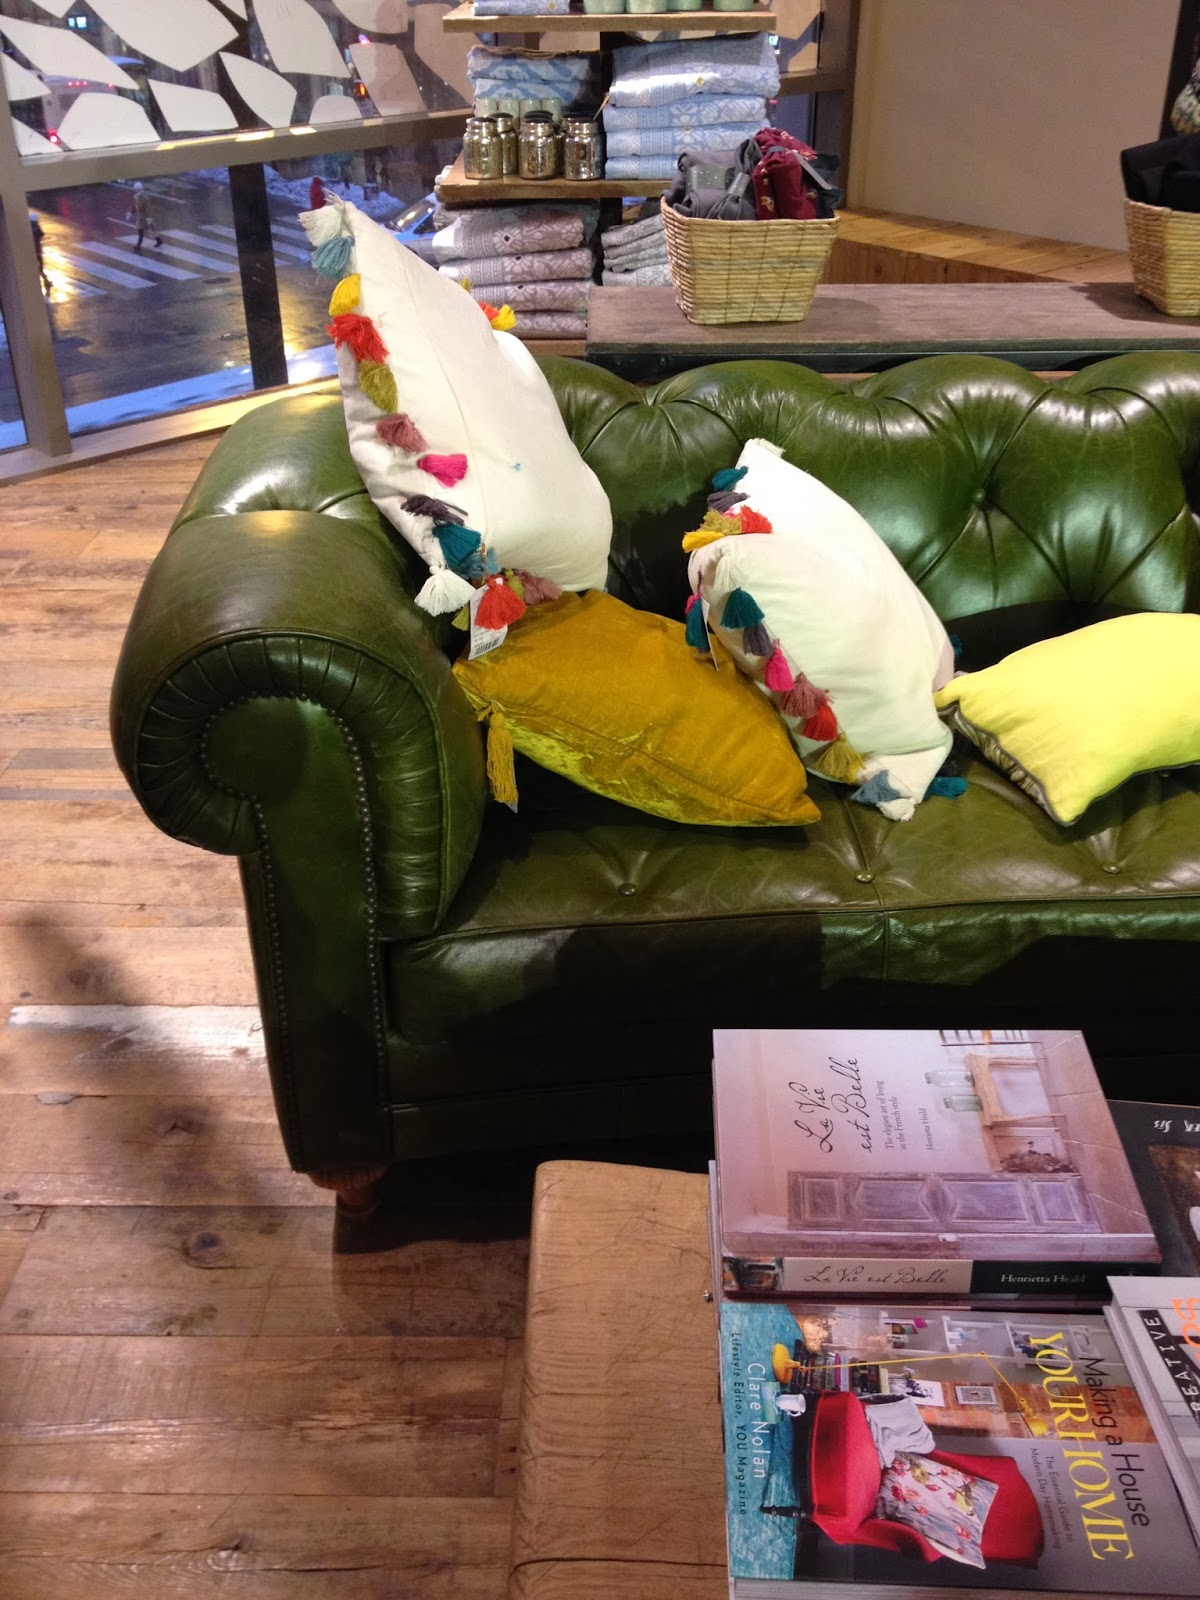 green couch & cushions